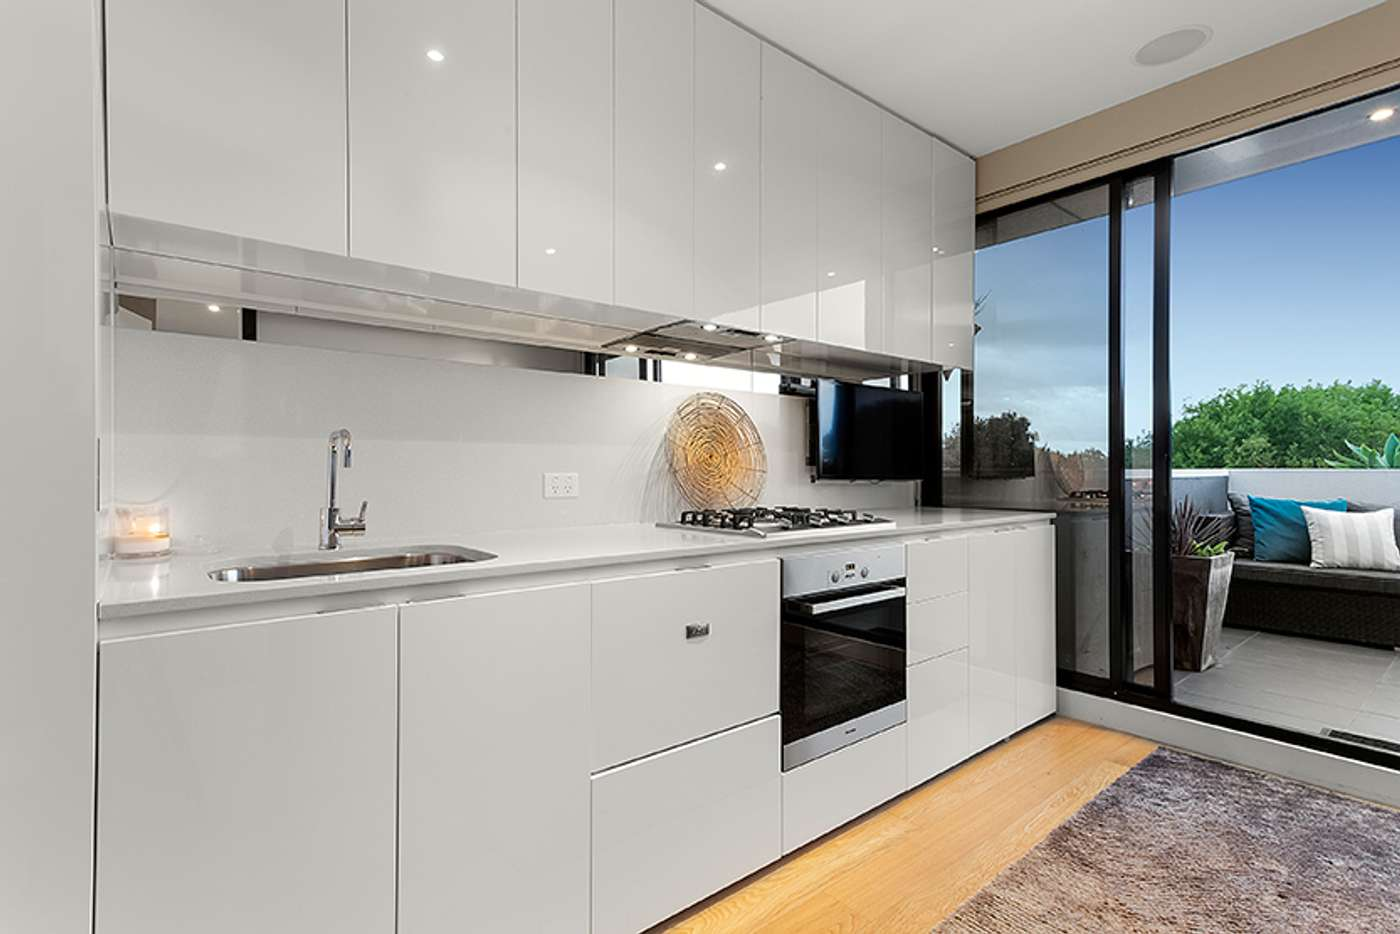 Fifth view of Homely apartment listing, 305/26-28 Broadway, Elwood VIC 3184